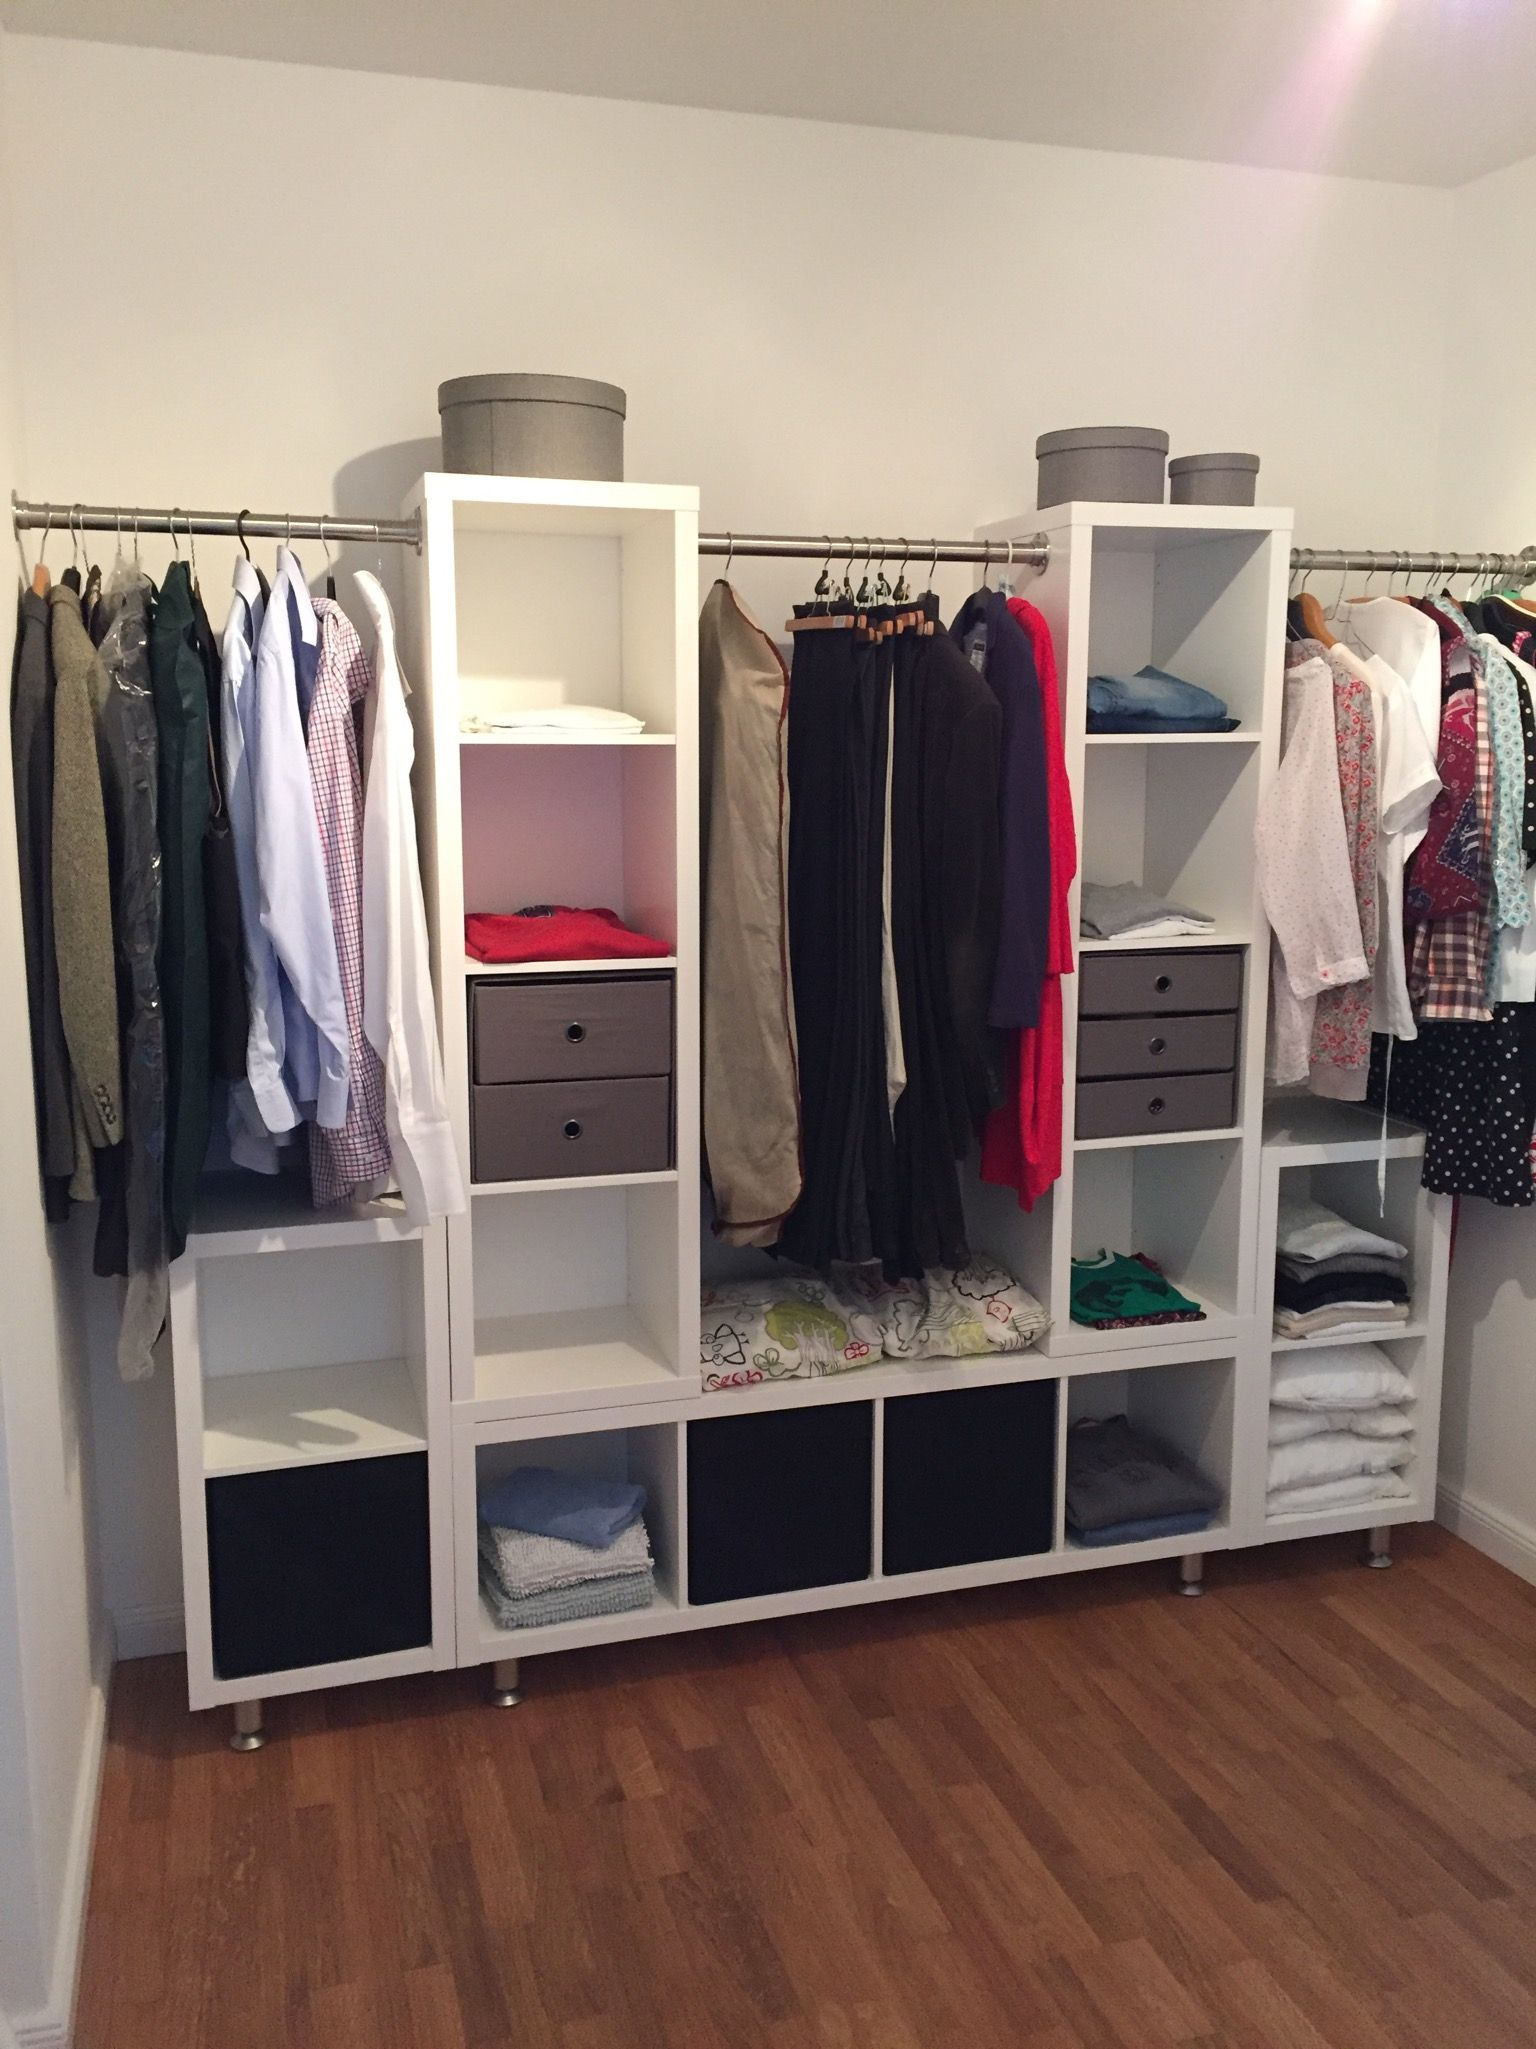 We Could Also Do Something Like This For The Spare Room If You Find You  Need A Lot More Folding Space.